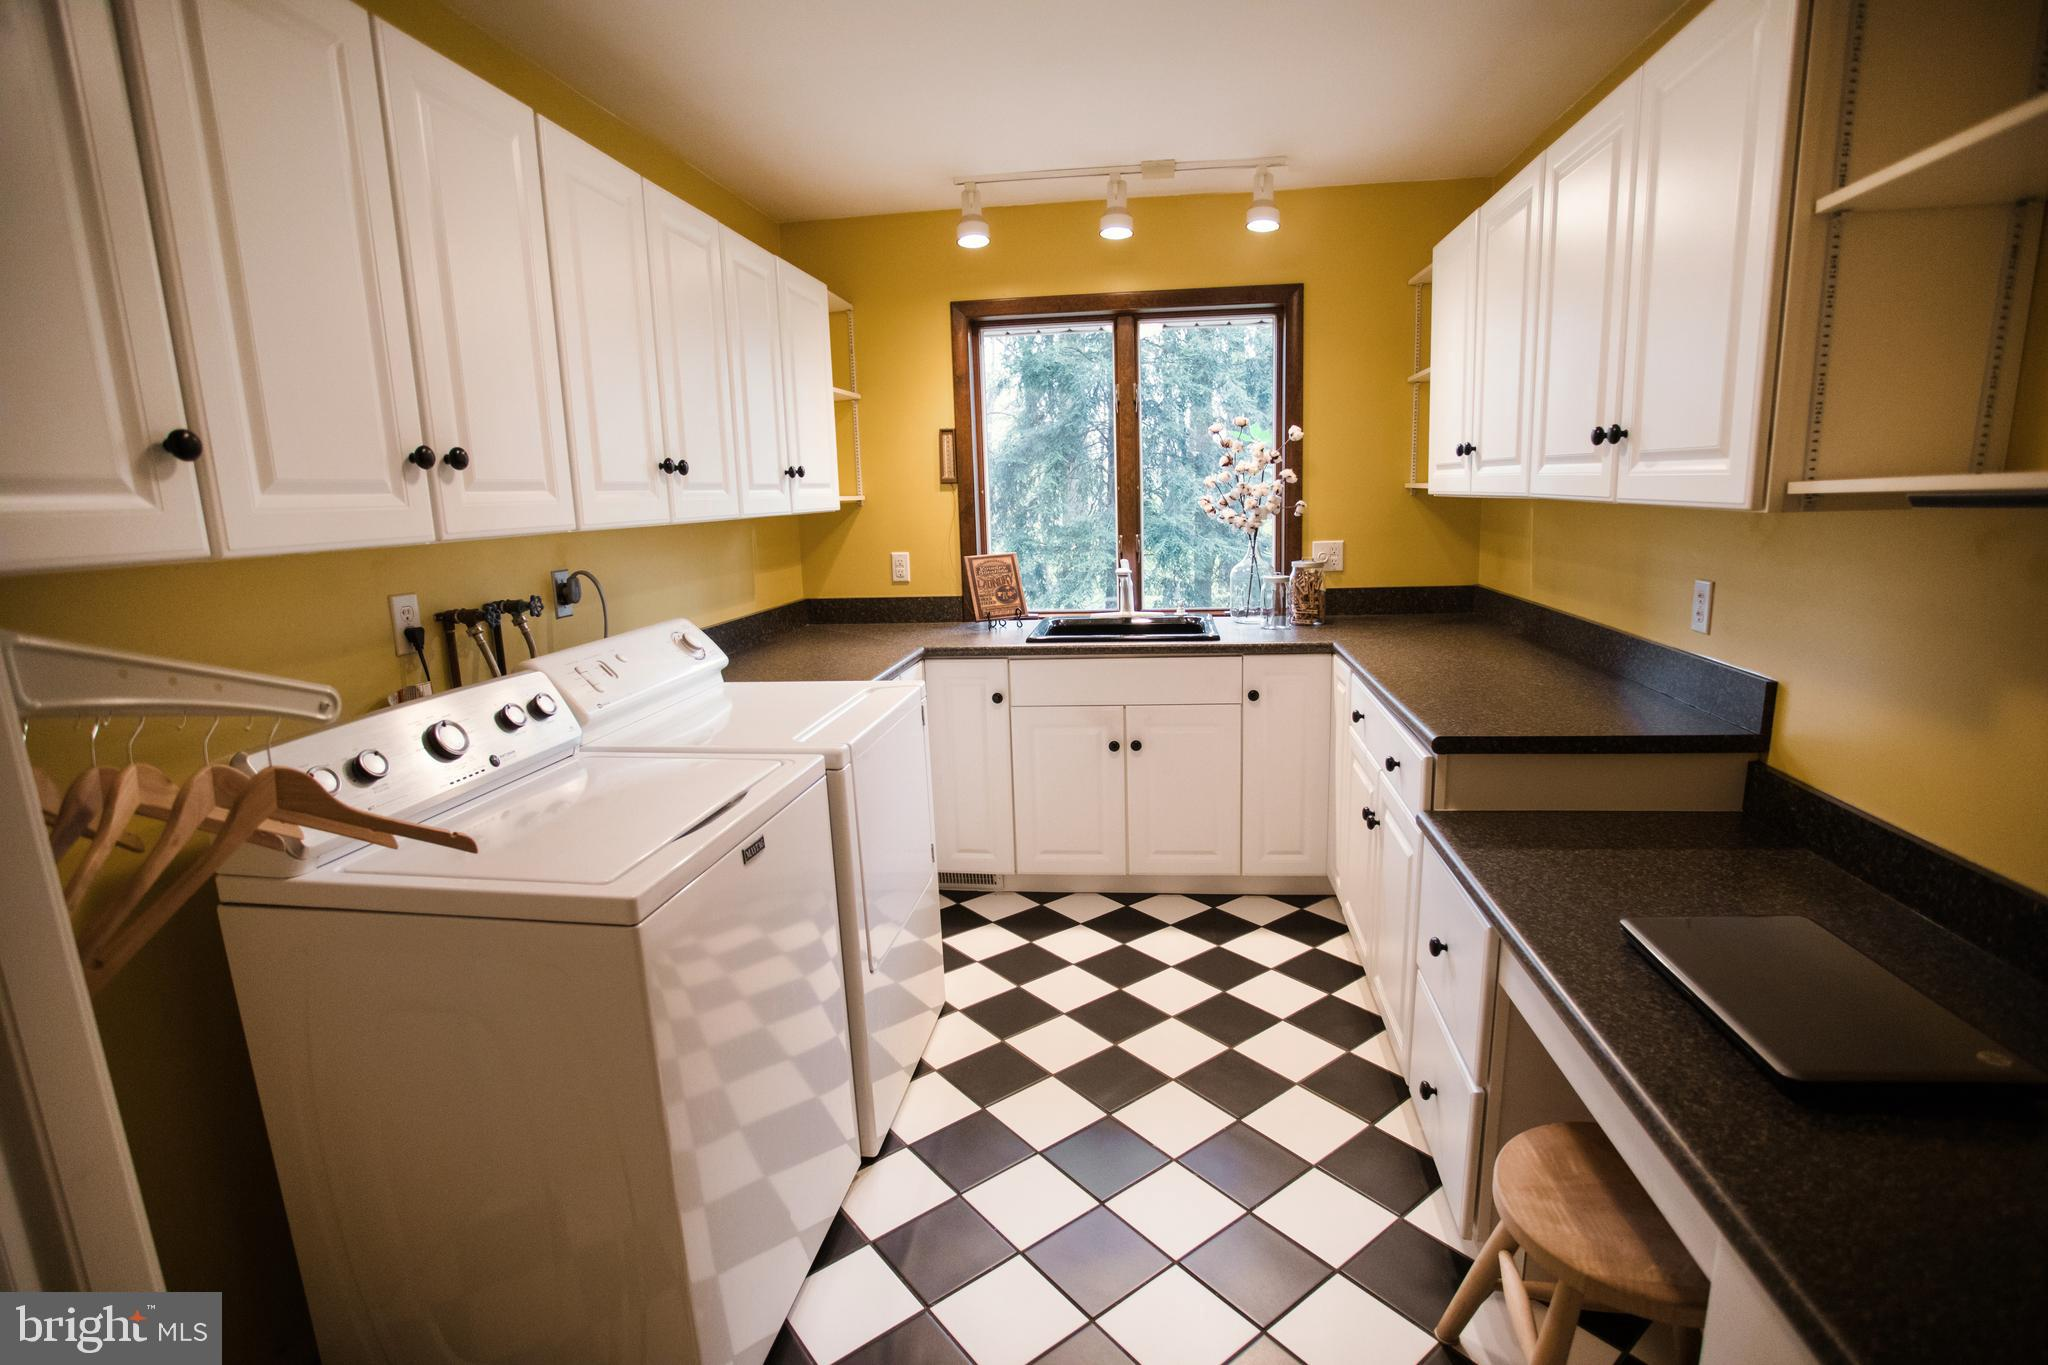 Another view of Laundry Room